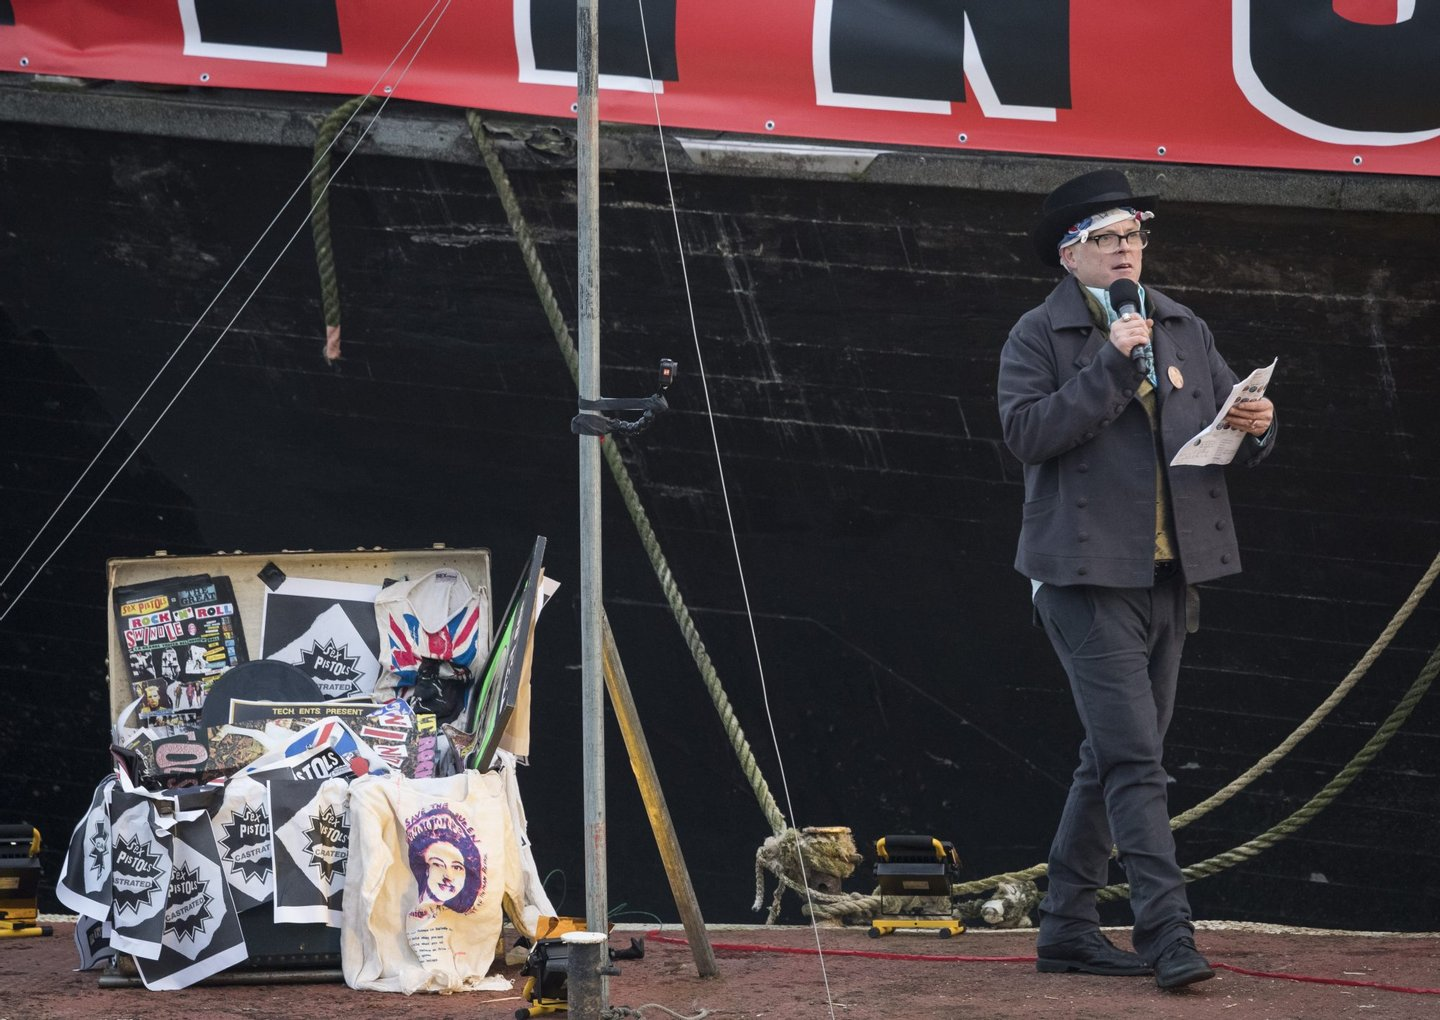 LONDON, ENGLAND - NOVEMBER 26: Joe Corre, the son of Vivienne Westwood and Sex Pistols creator Malcolm McLaren prepares to burn his entire £5 million punk collection on November 26, 2016 in London, England. Joe Corre burnt the rare punk memorabilia in protest saying punk has no solutions for today's youth and is 'conning the young'. (Photo by John Phillips/Getty Images)